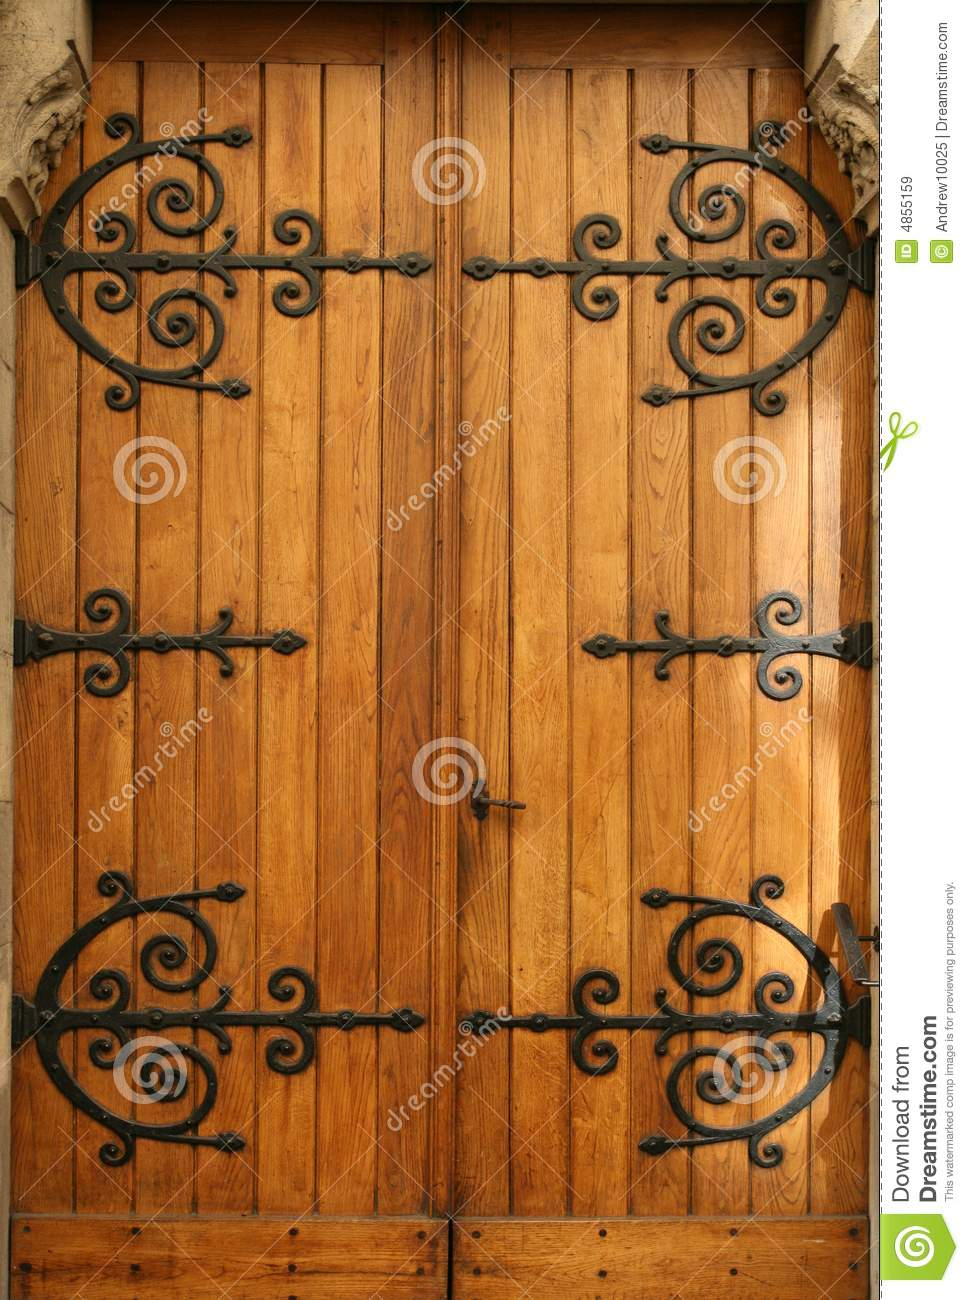 Medieval Wood Door Wroughtiron Details Stock Image